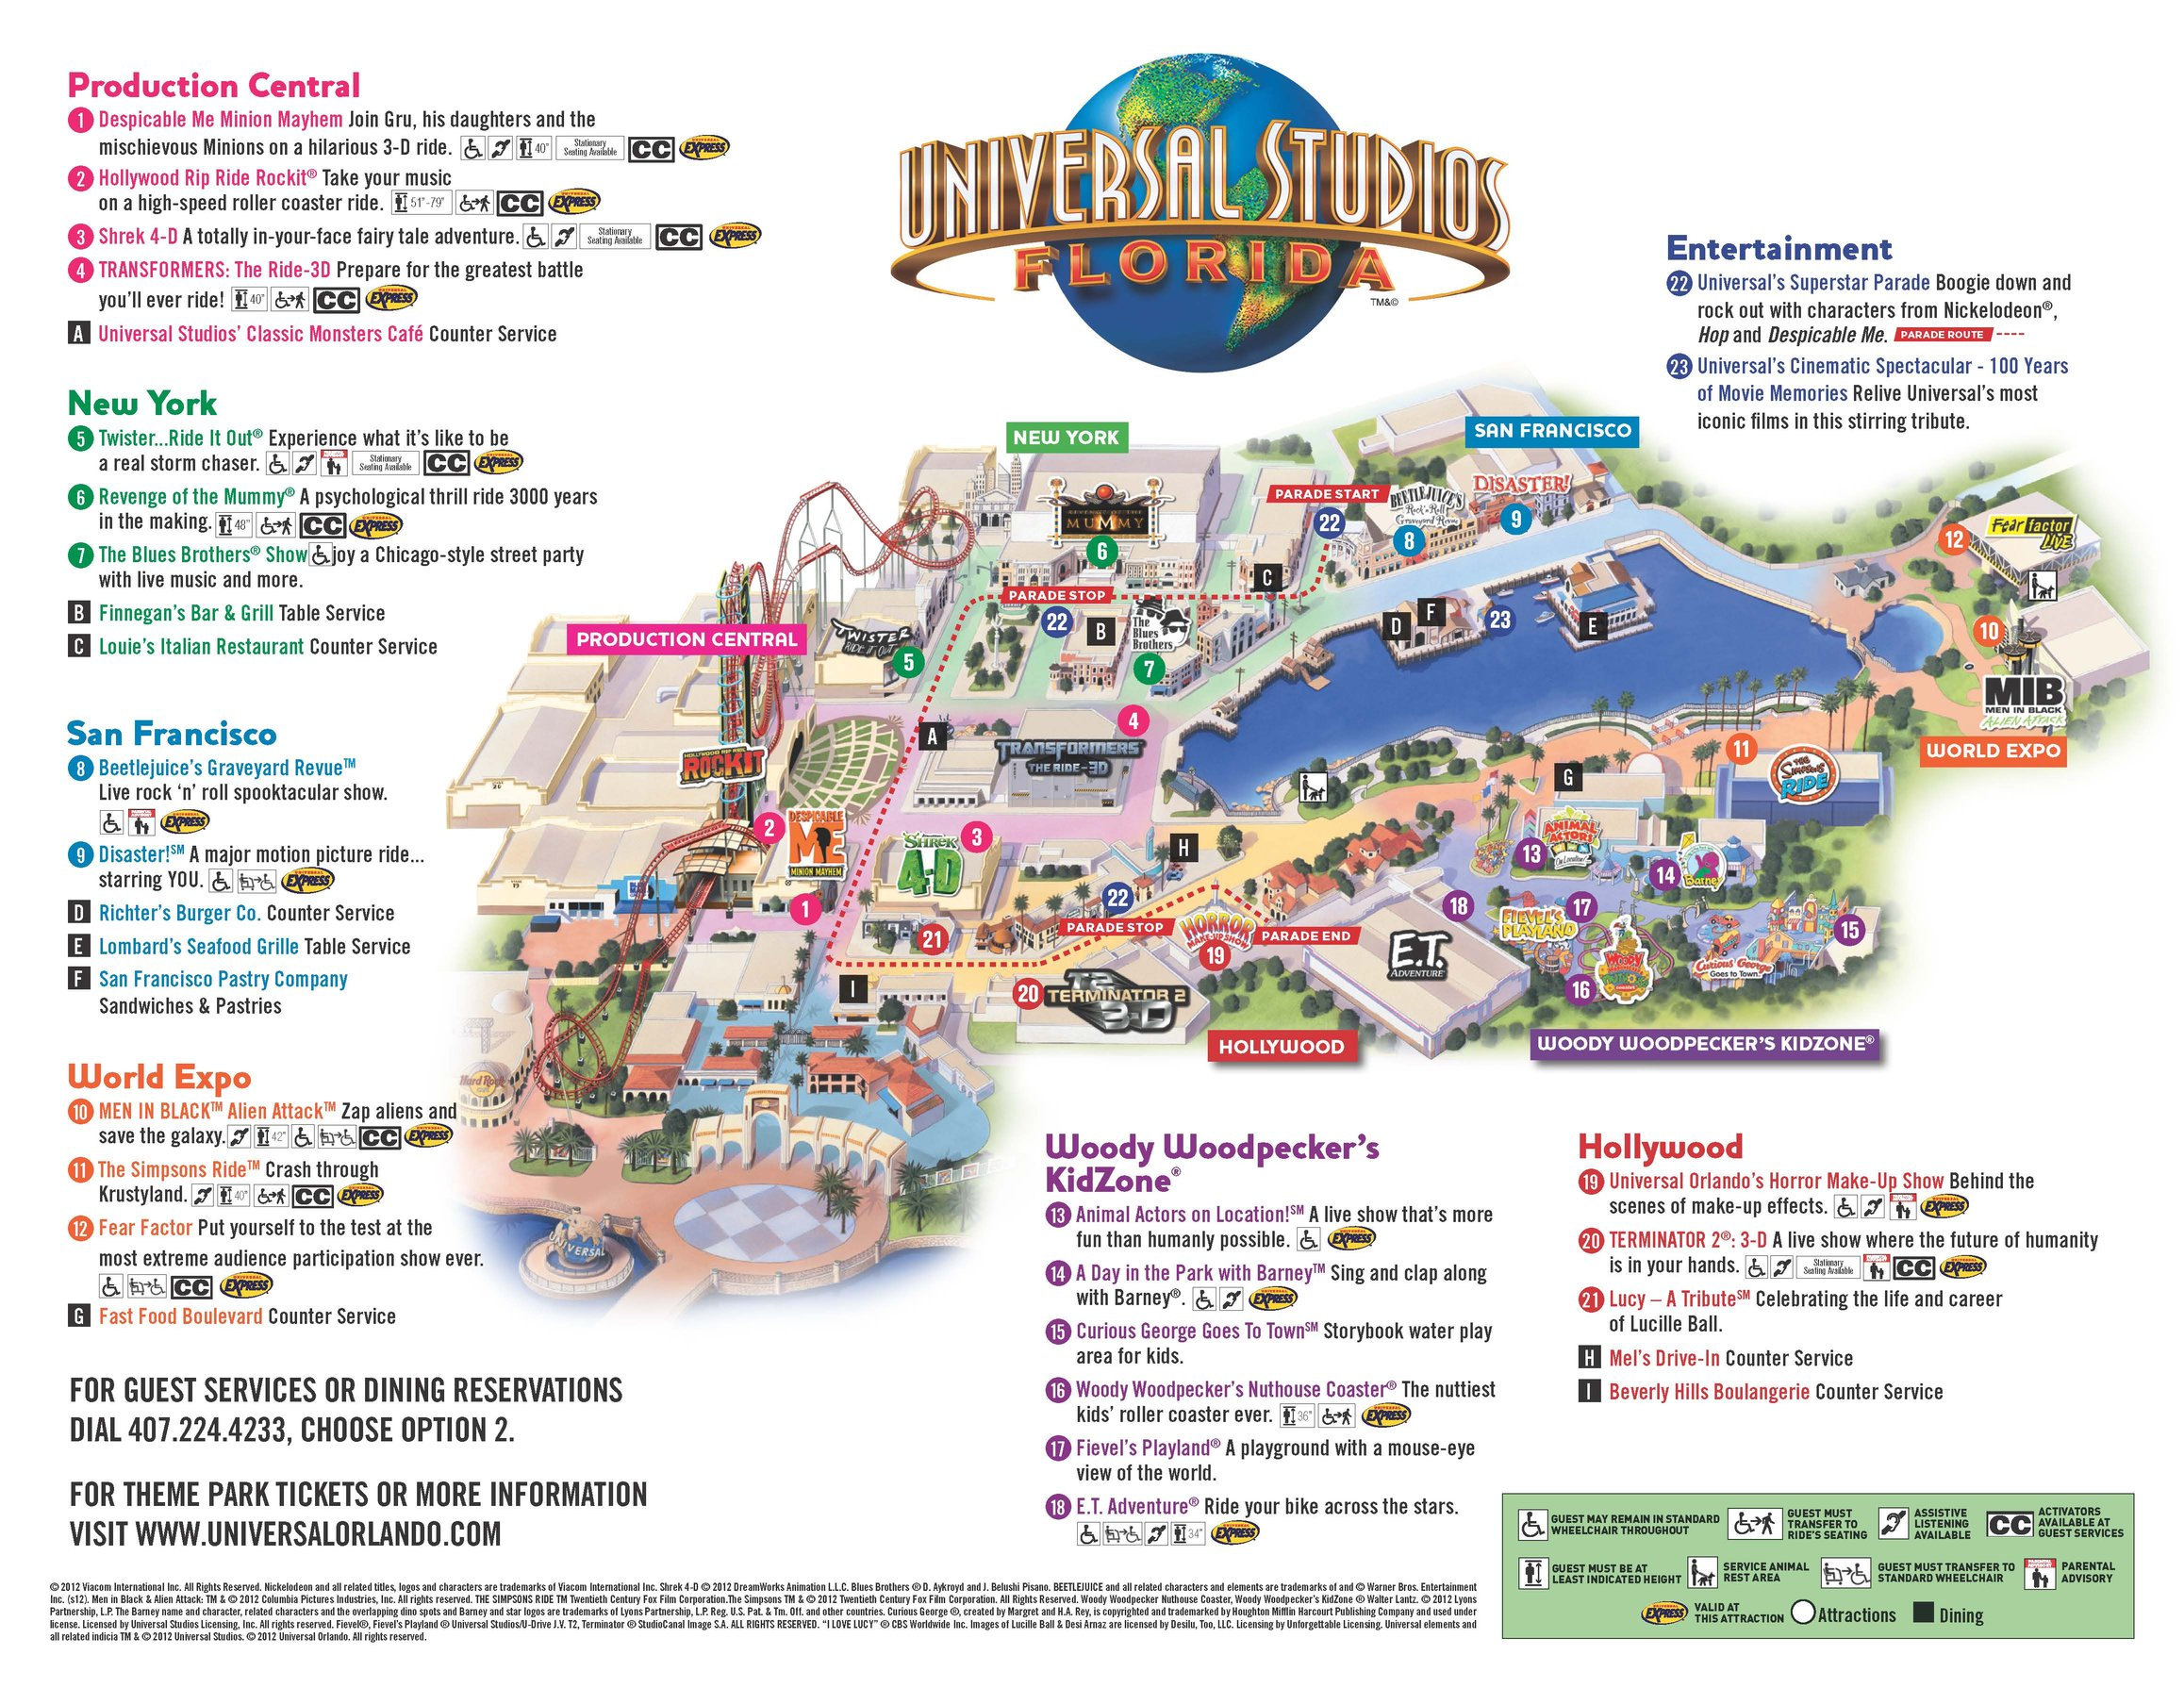 halloween horror nights map hollywood with Helpfulinformation on 2013 in addition Halloween Horror Nights 23 Opens At Universal Orlando Resort moreover 2993814447 furthermore Dlwall likewise Guide Universal Orlando Halloween Horror Nights.